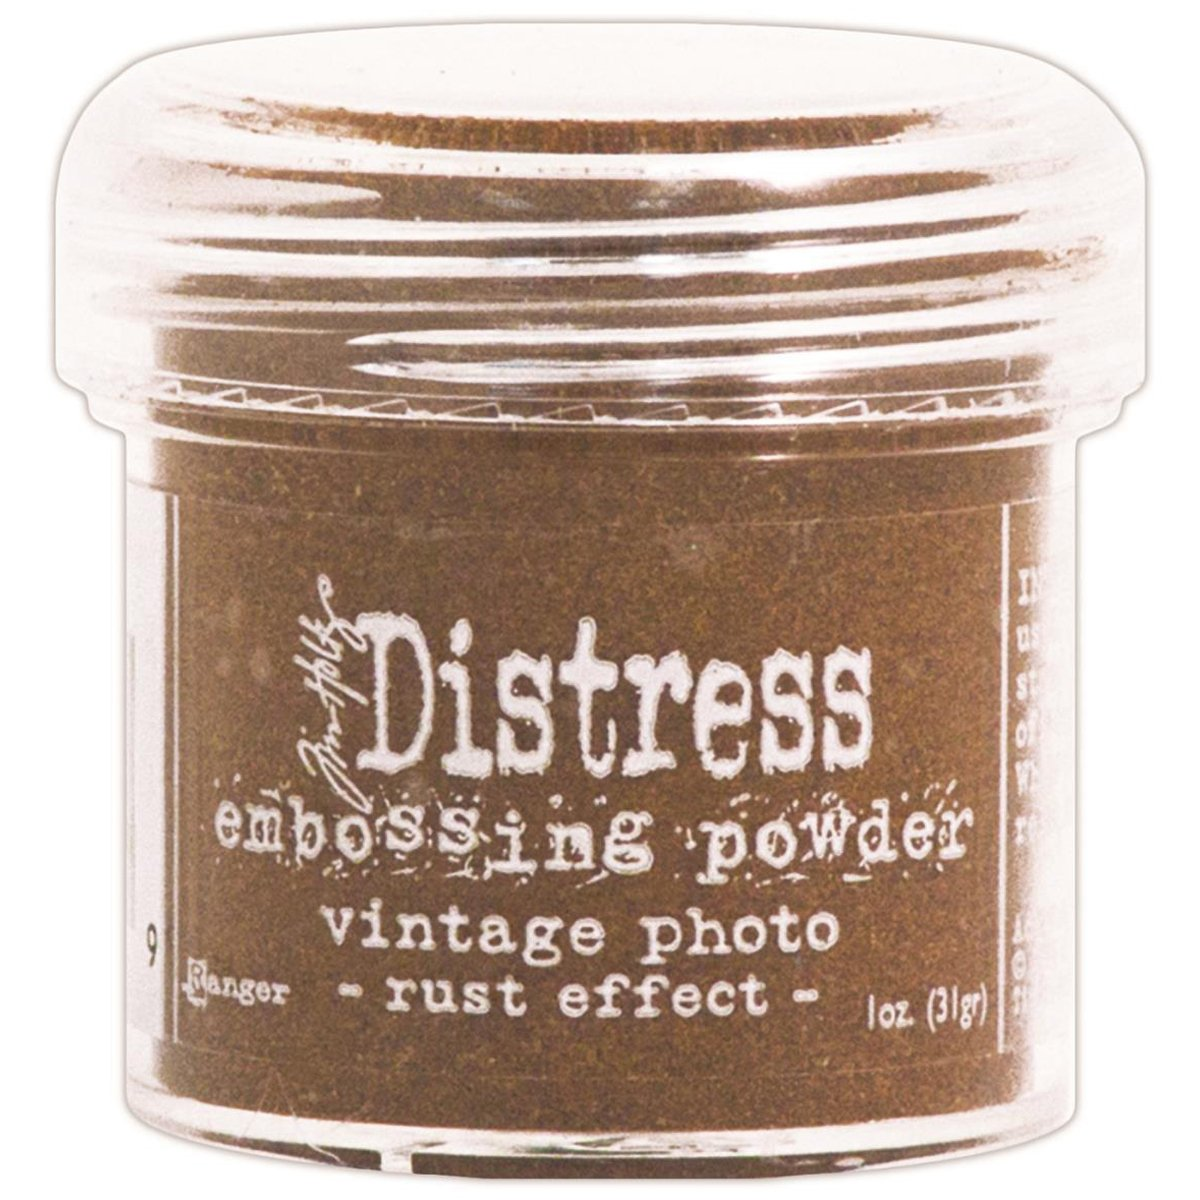 Ranger TIM-22862 Tim Holtz Distress Embossing Powder, Brushed Corduroy, 1-Ounce Notions - In Network